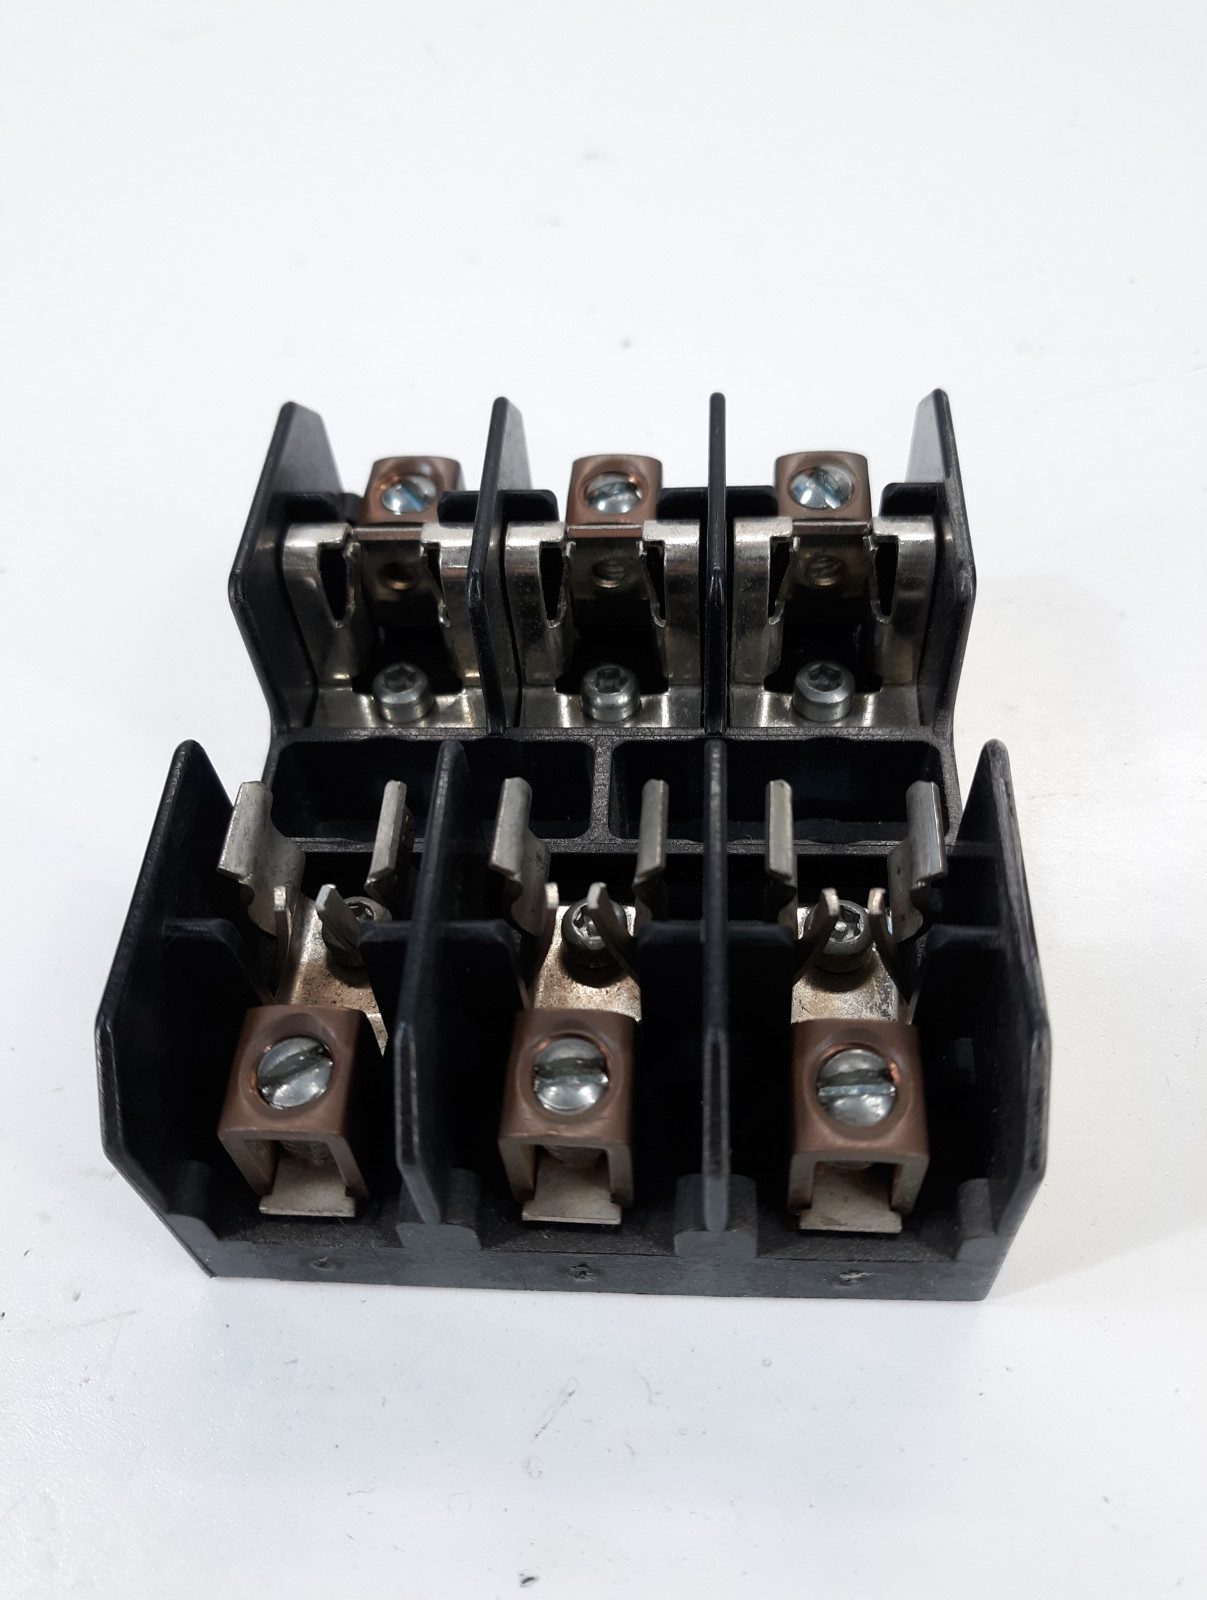 Bussmann BC6033B Fuse Holders 30A 600V 3POLE